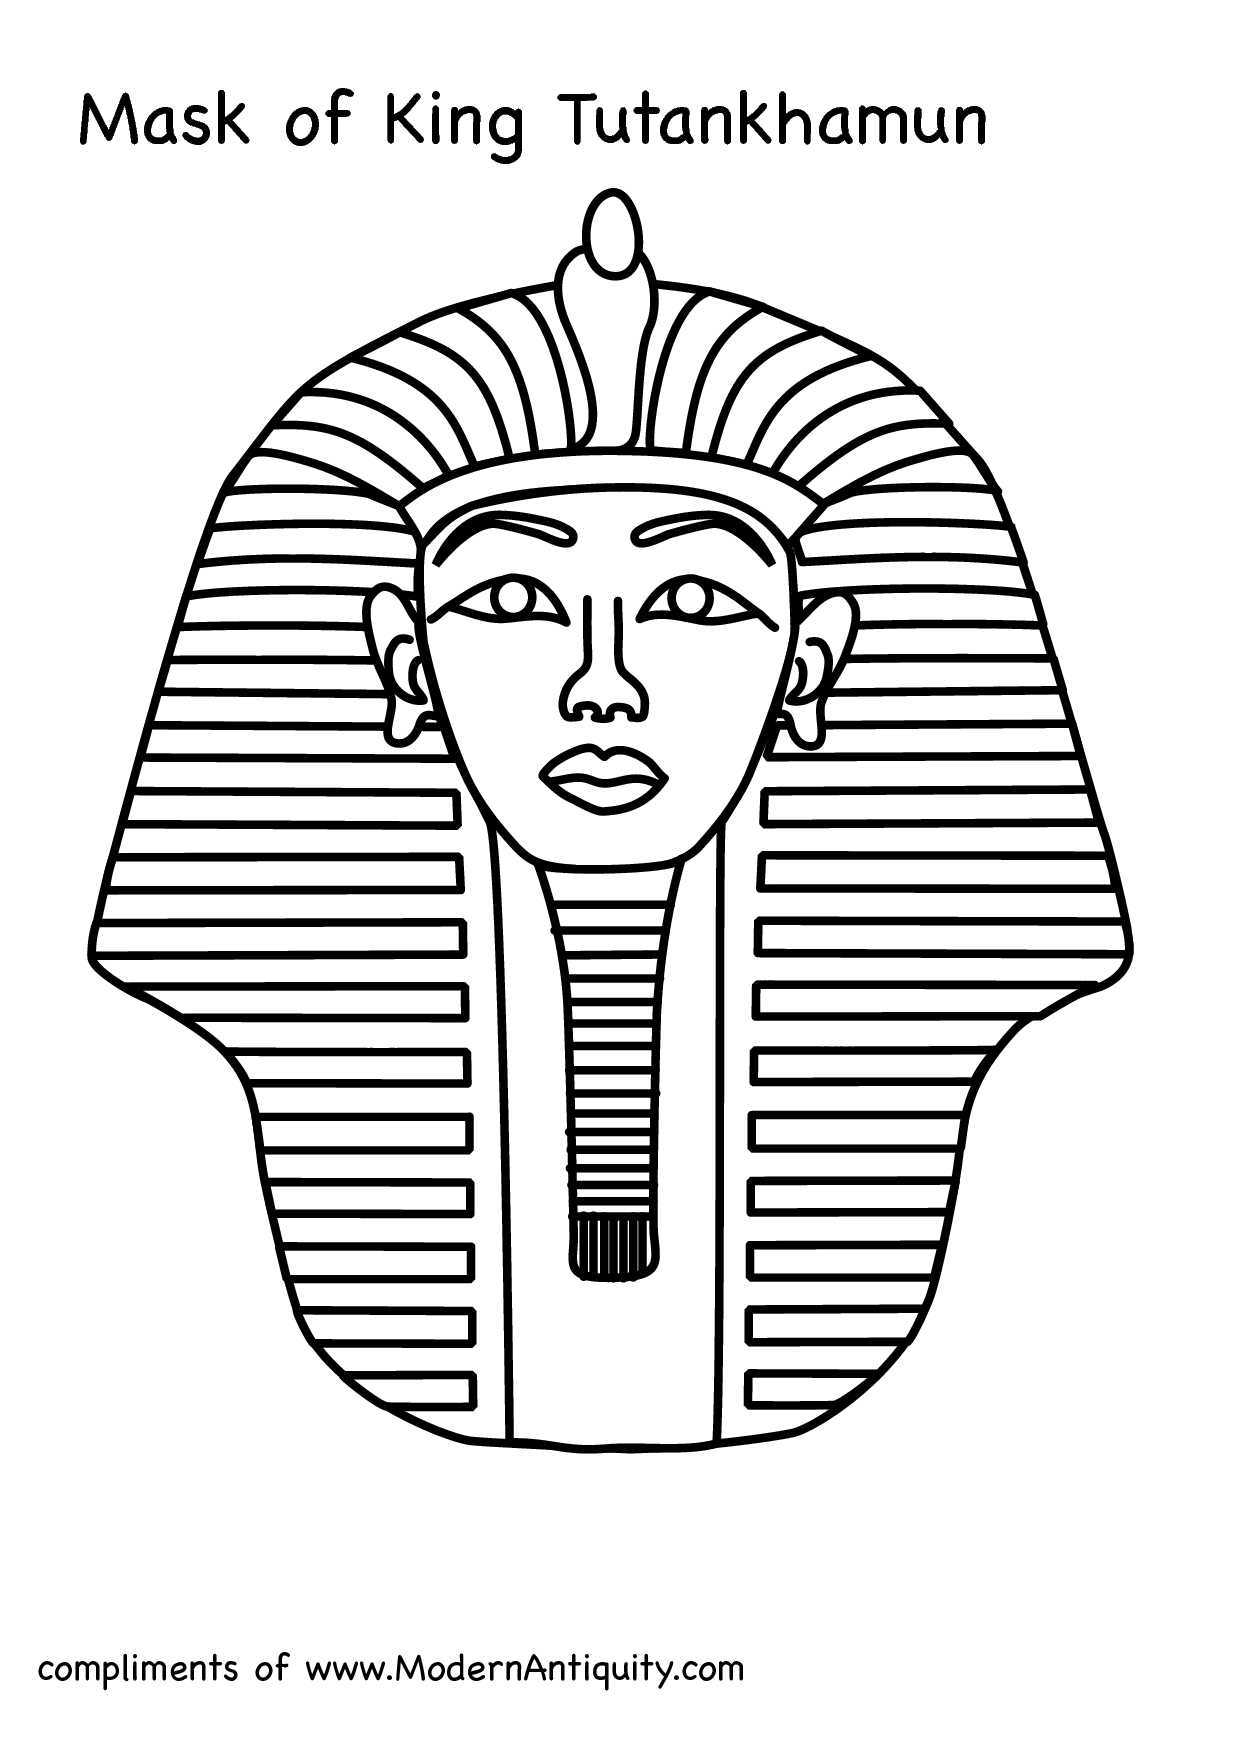 Tutankhanun mask clipart clipground for King tut mask template